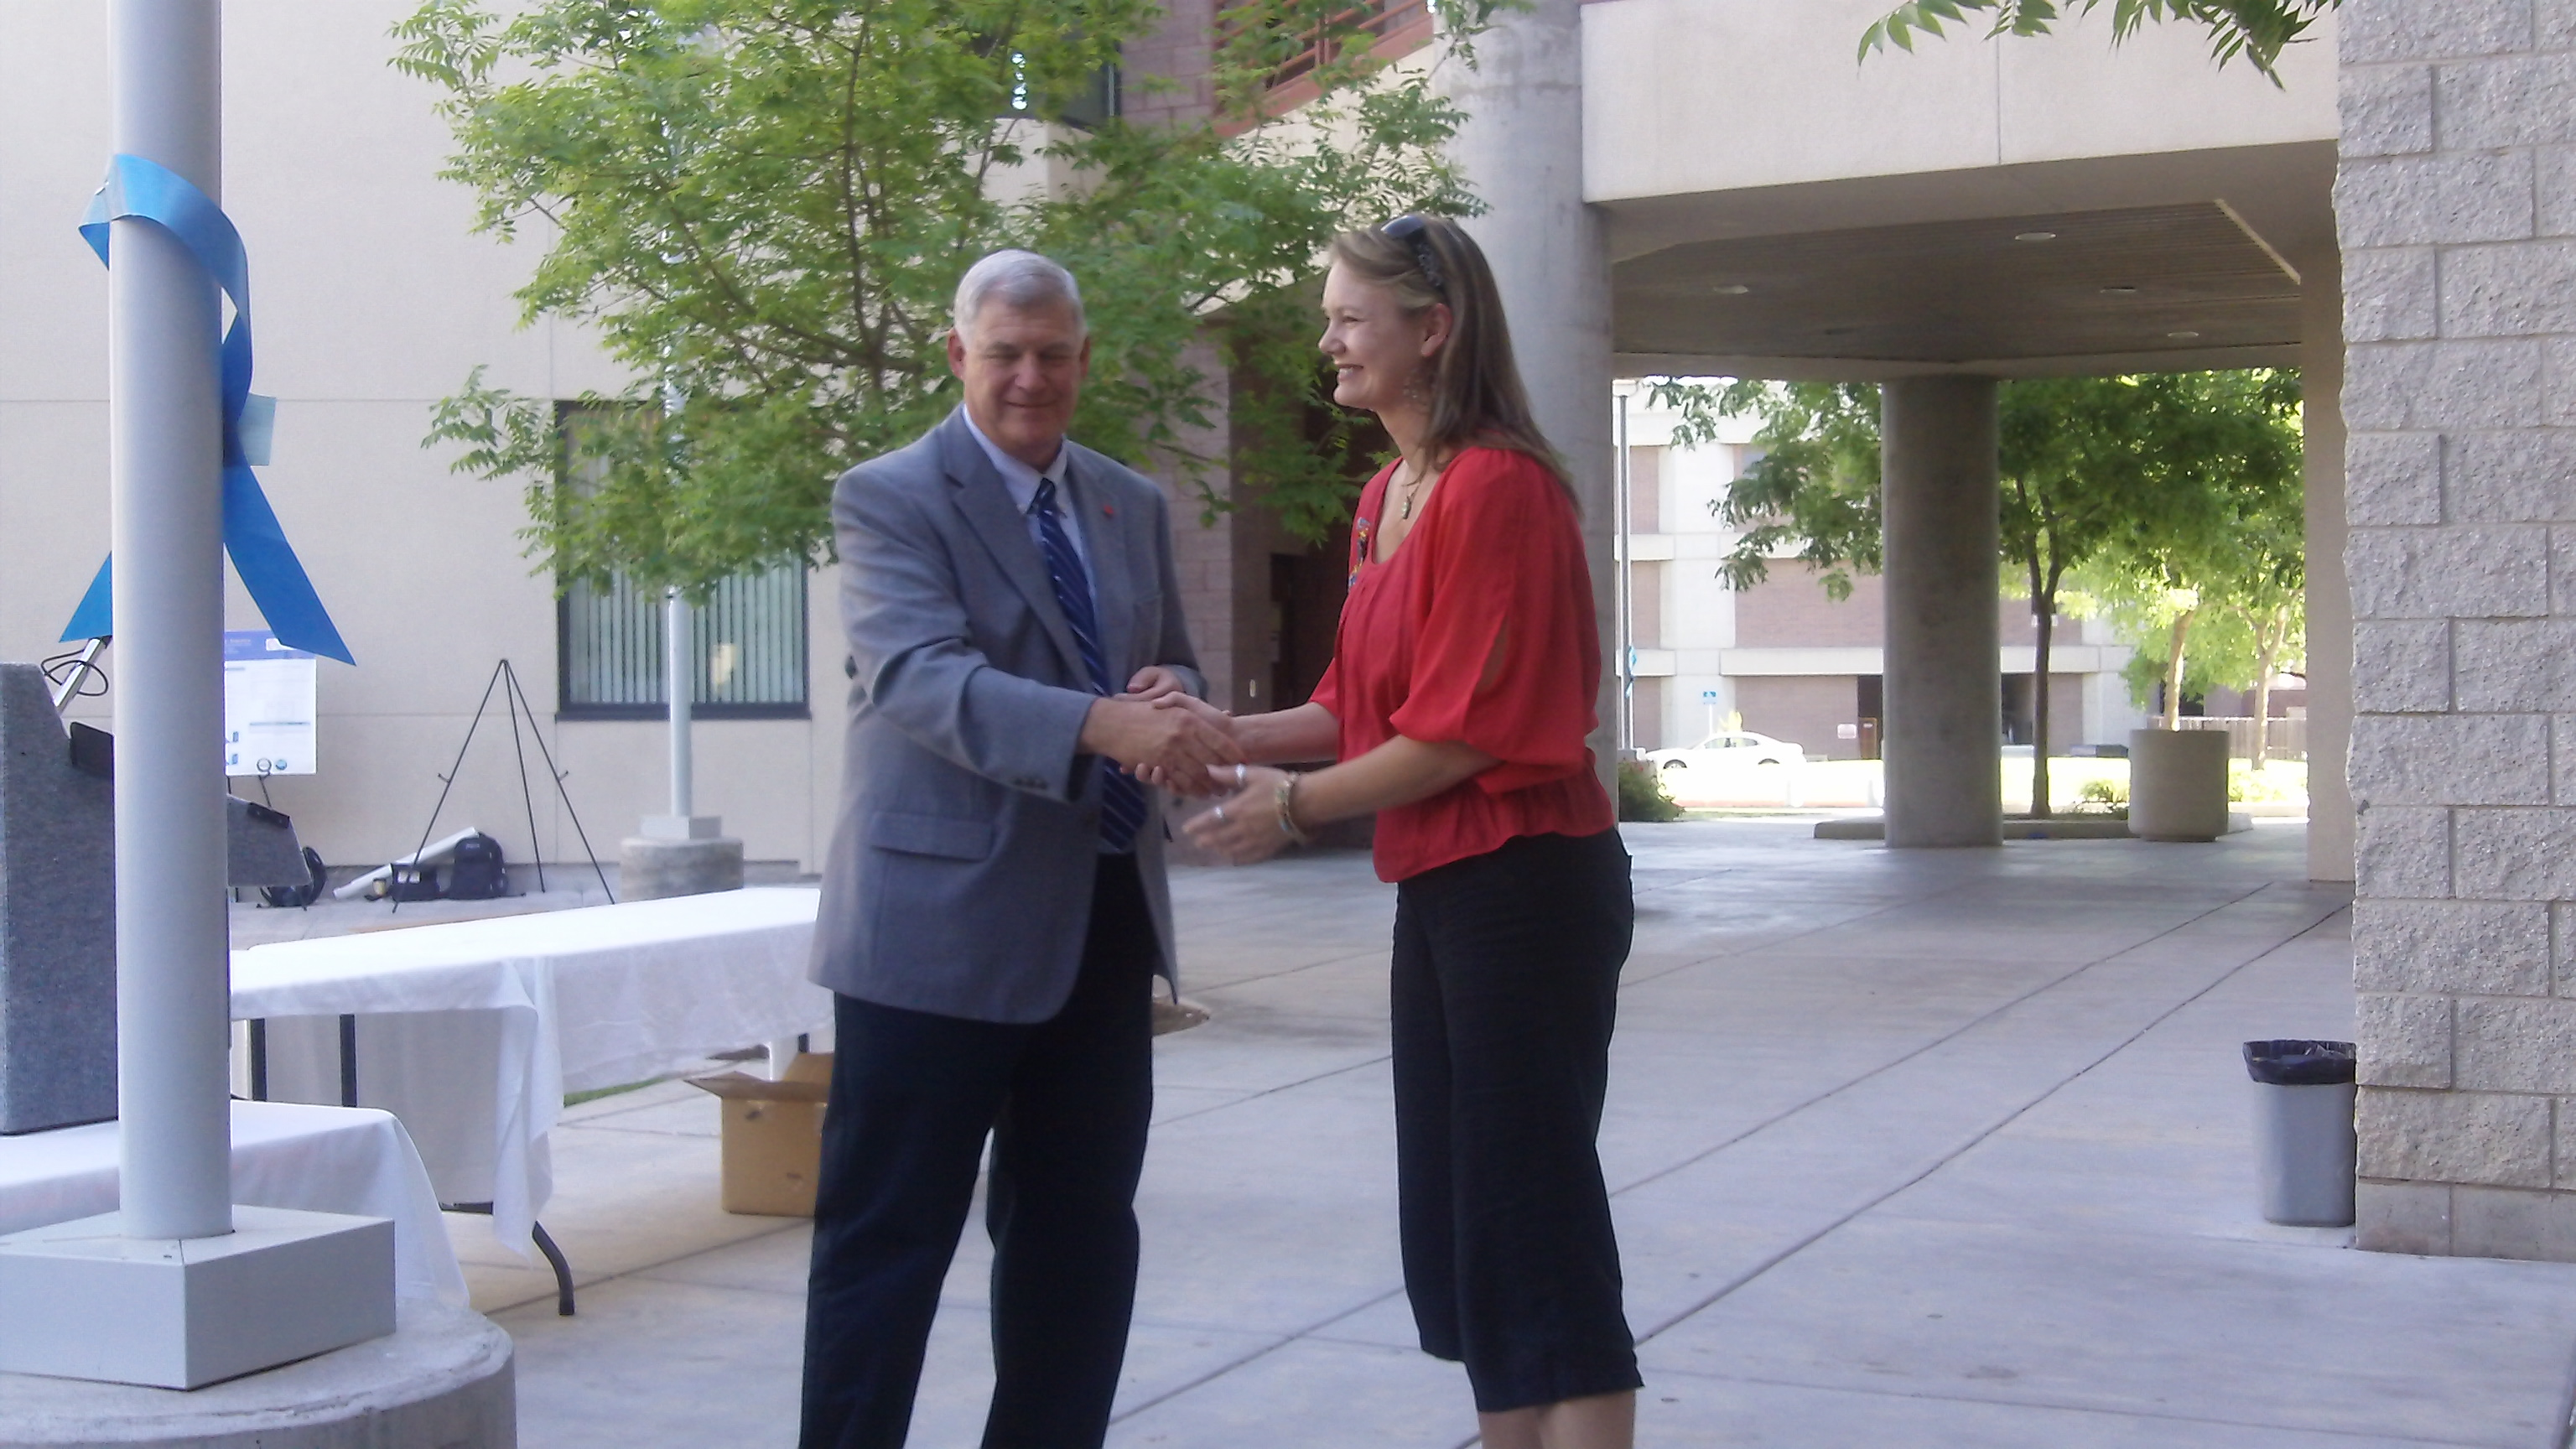 Dean Hoff and Dr. Amanda Adams